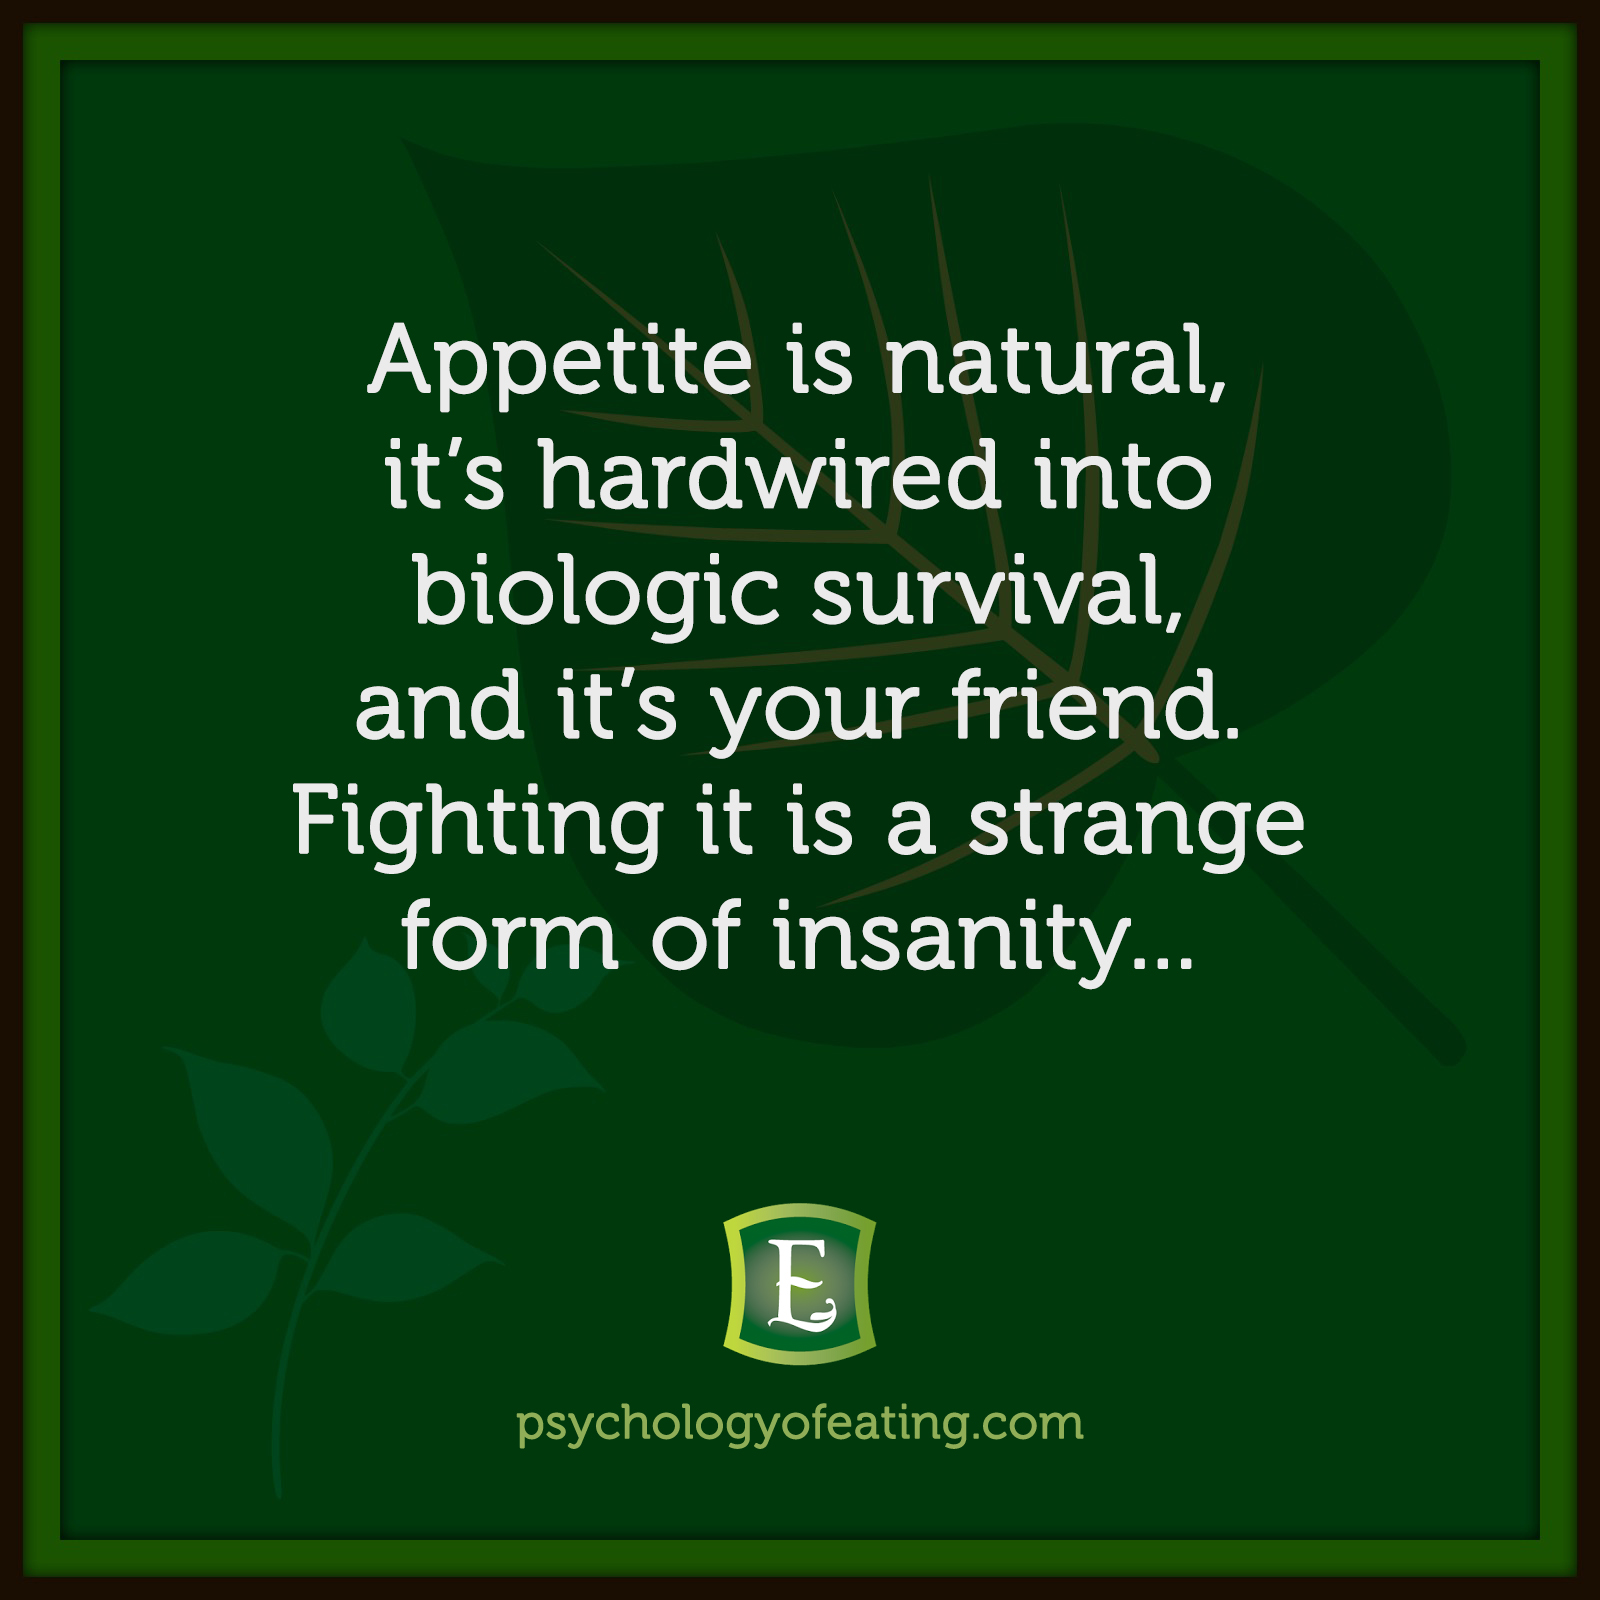 Appetite is natural, it's hardwired into biologic survival, and it's your friend. Fighting it is a strange form of insanity… #health #nutrition #eatingpsychology #IPE